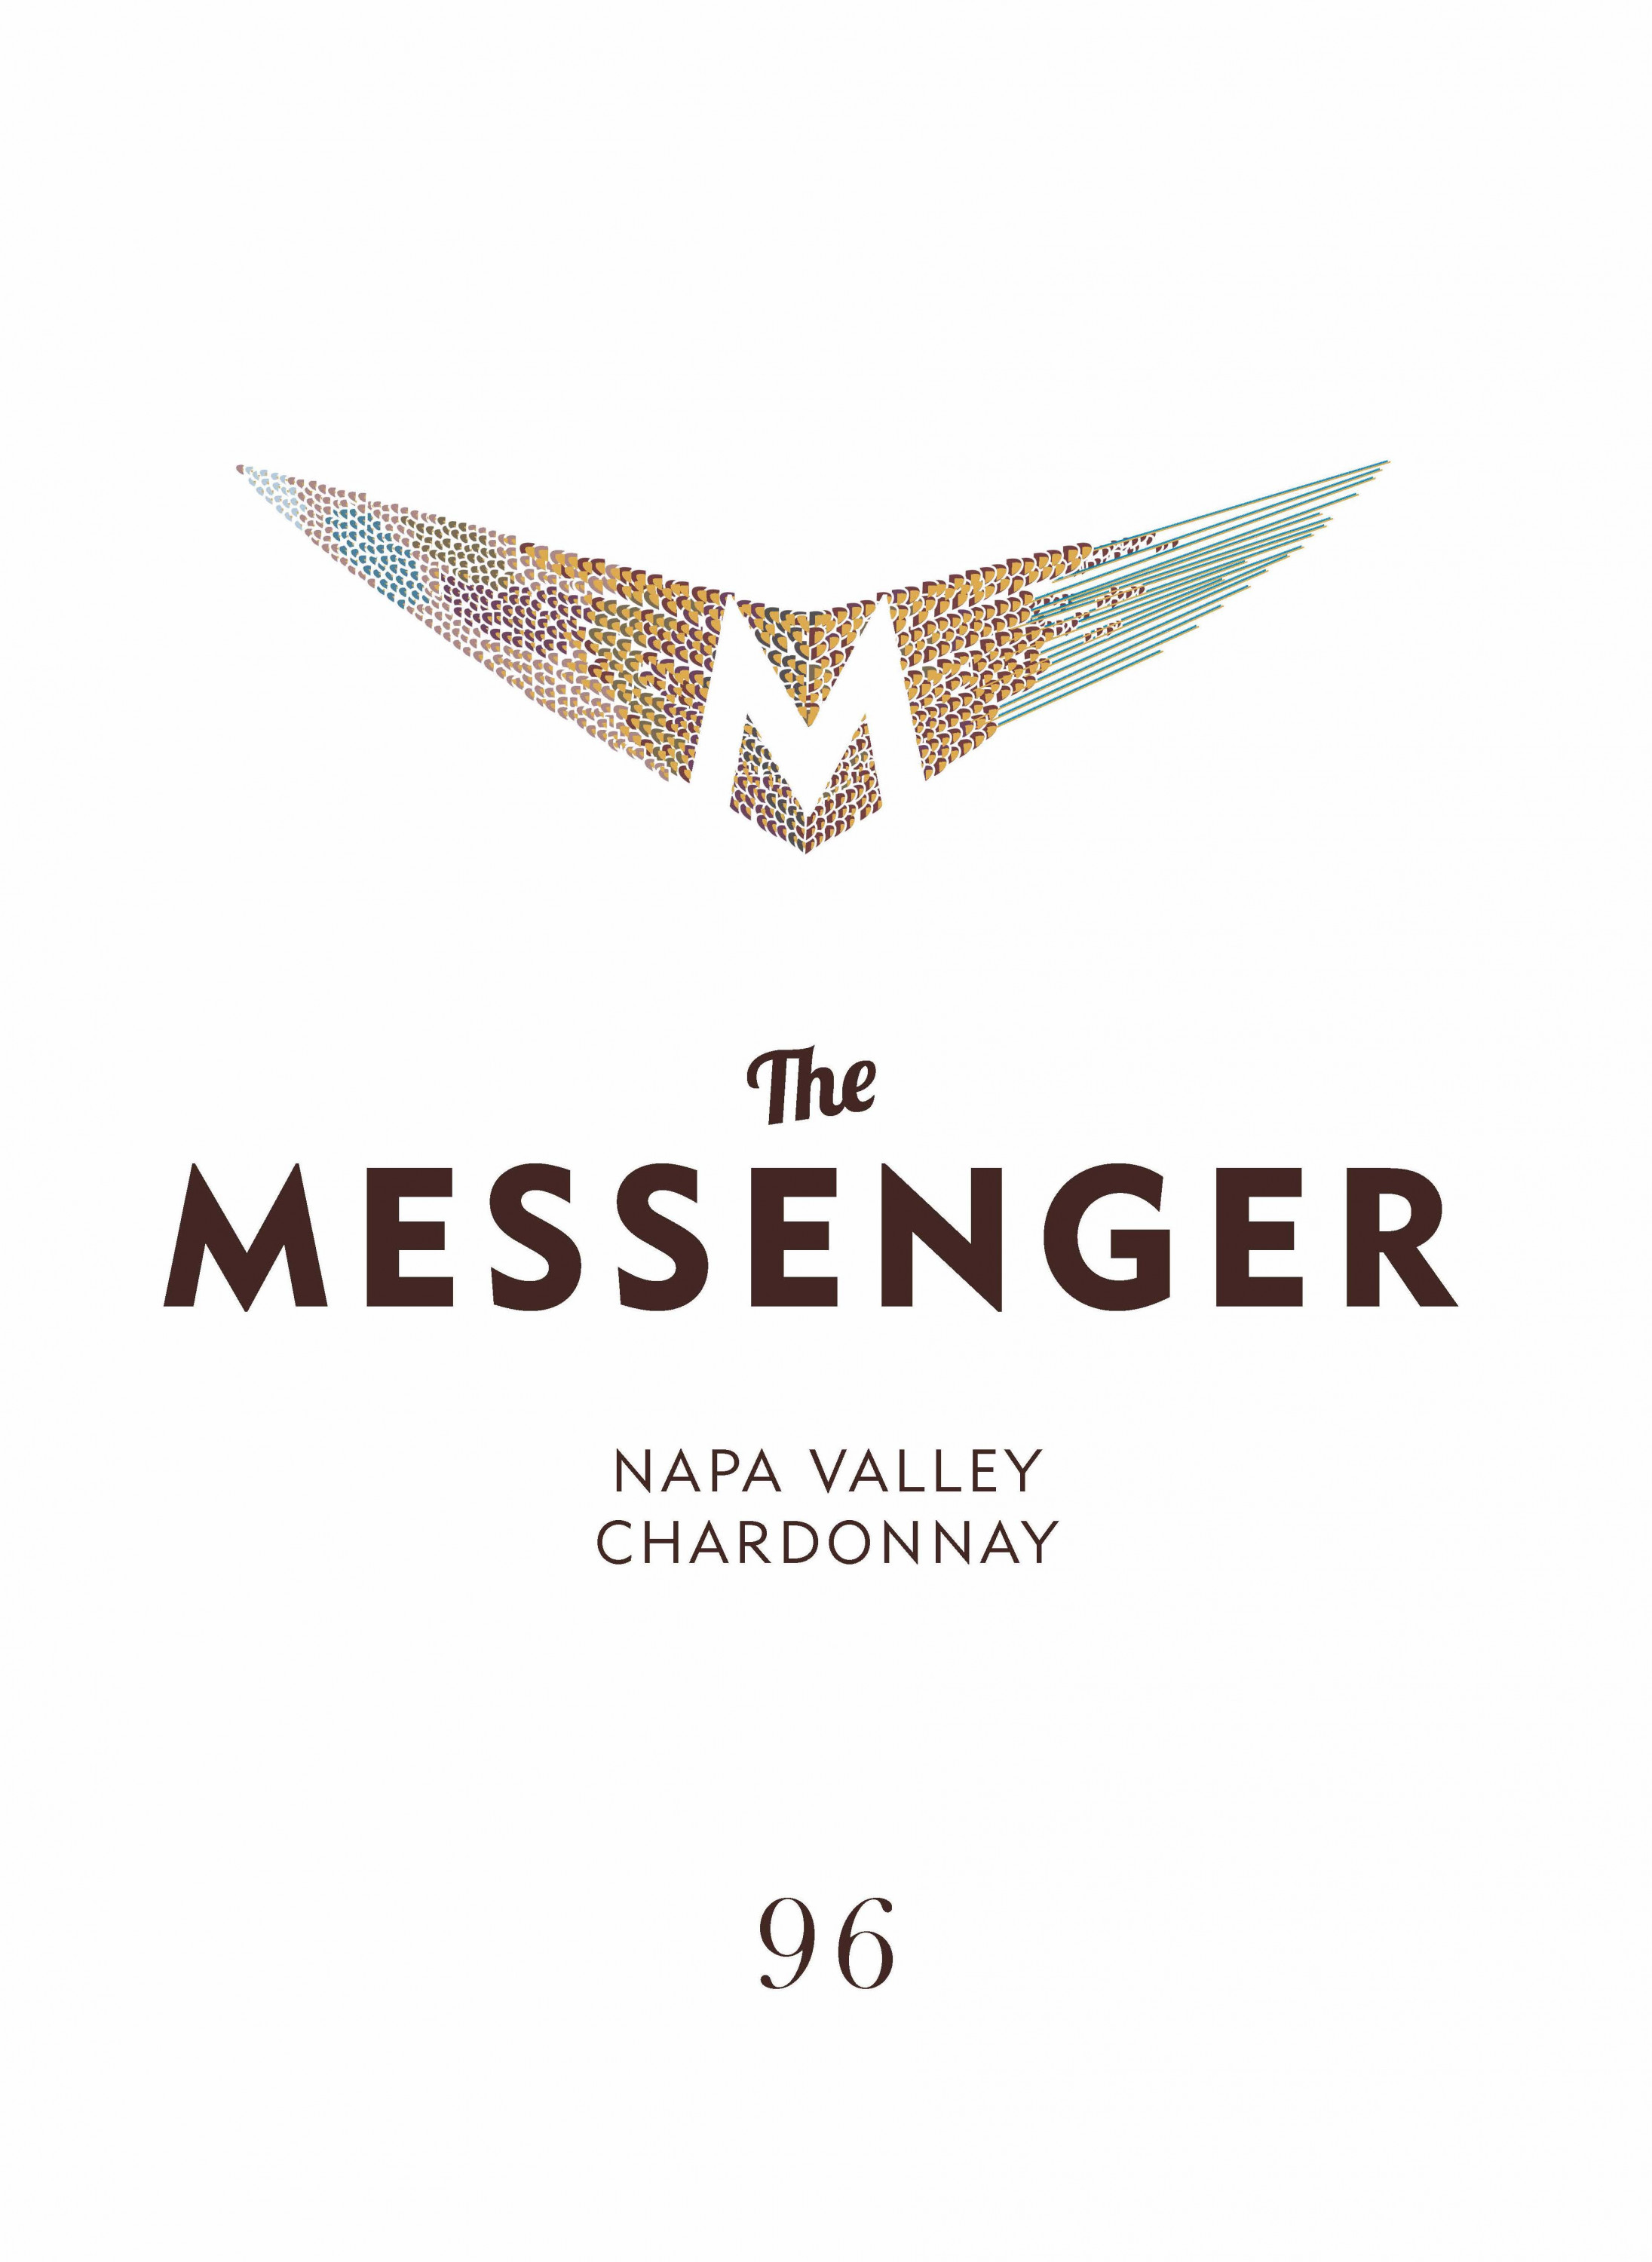 The Messenger 2018 Chardonnay  - Art+Farm Wine